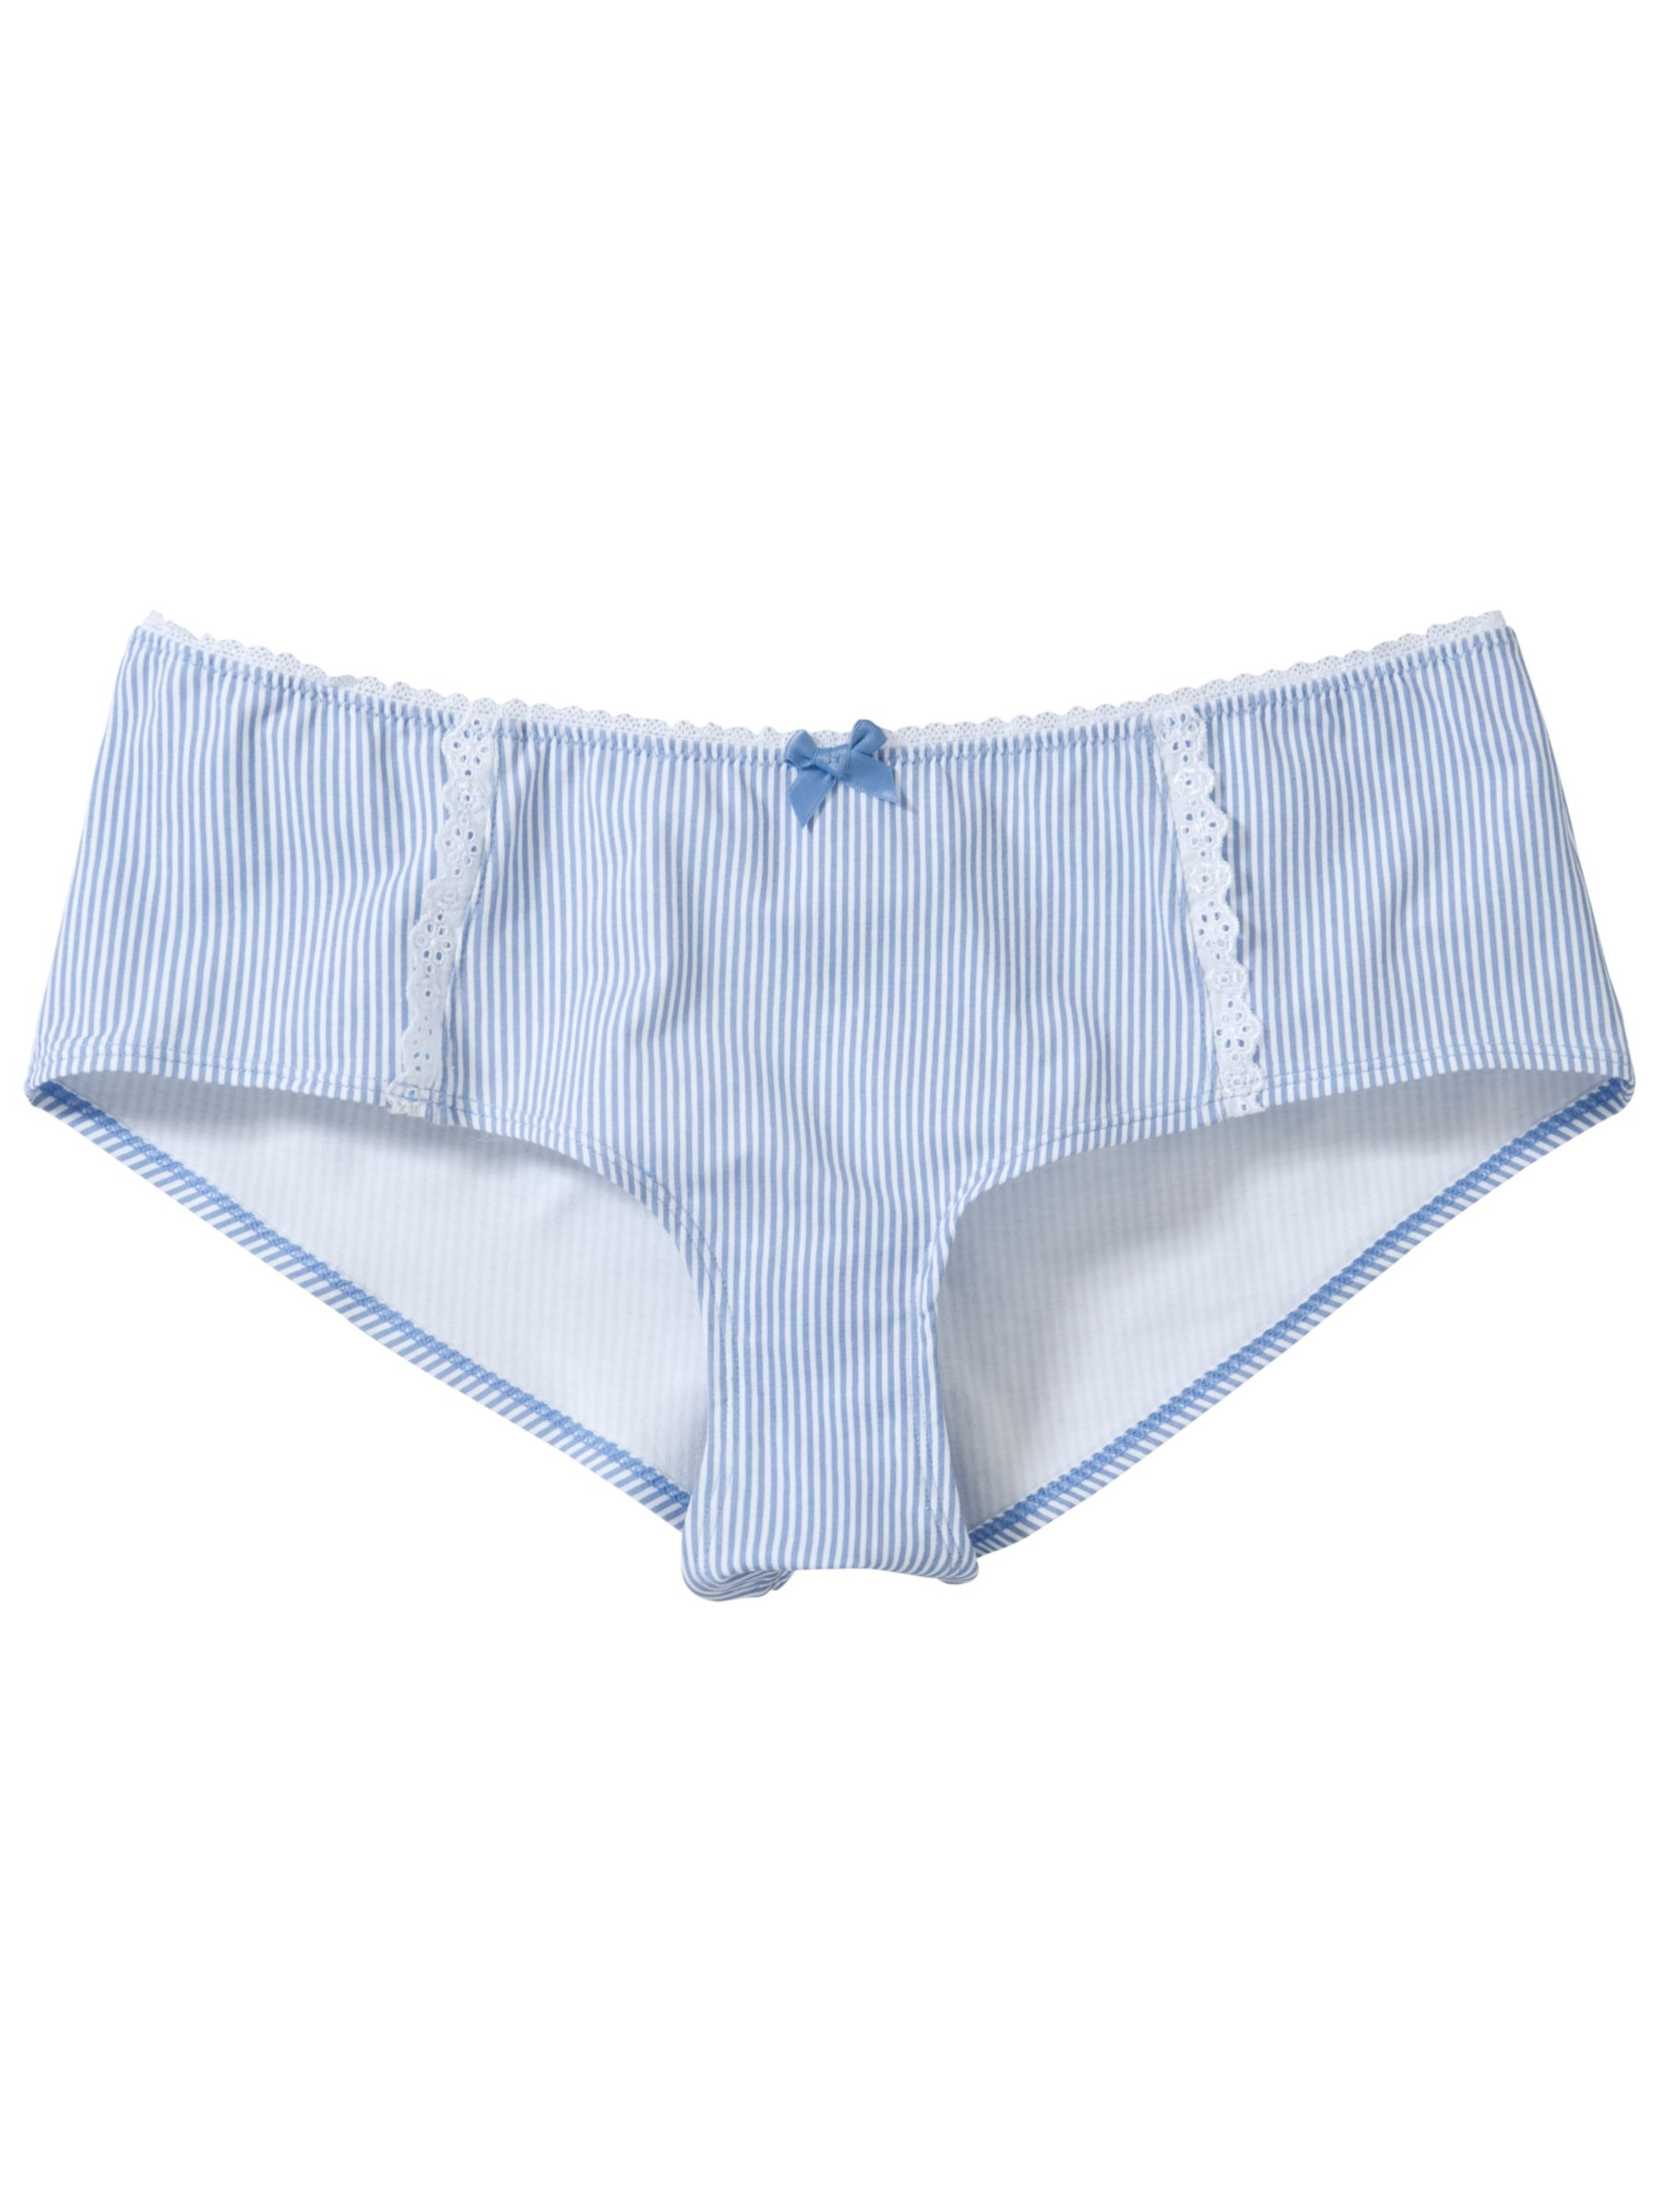 John Lewis Pixie Teen Shorts, Blue/White